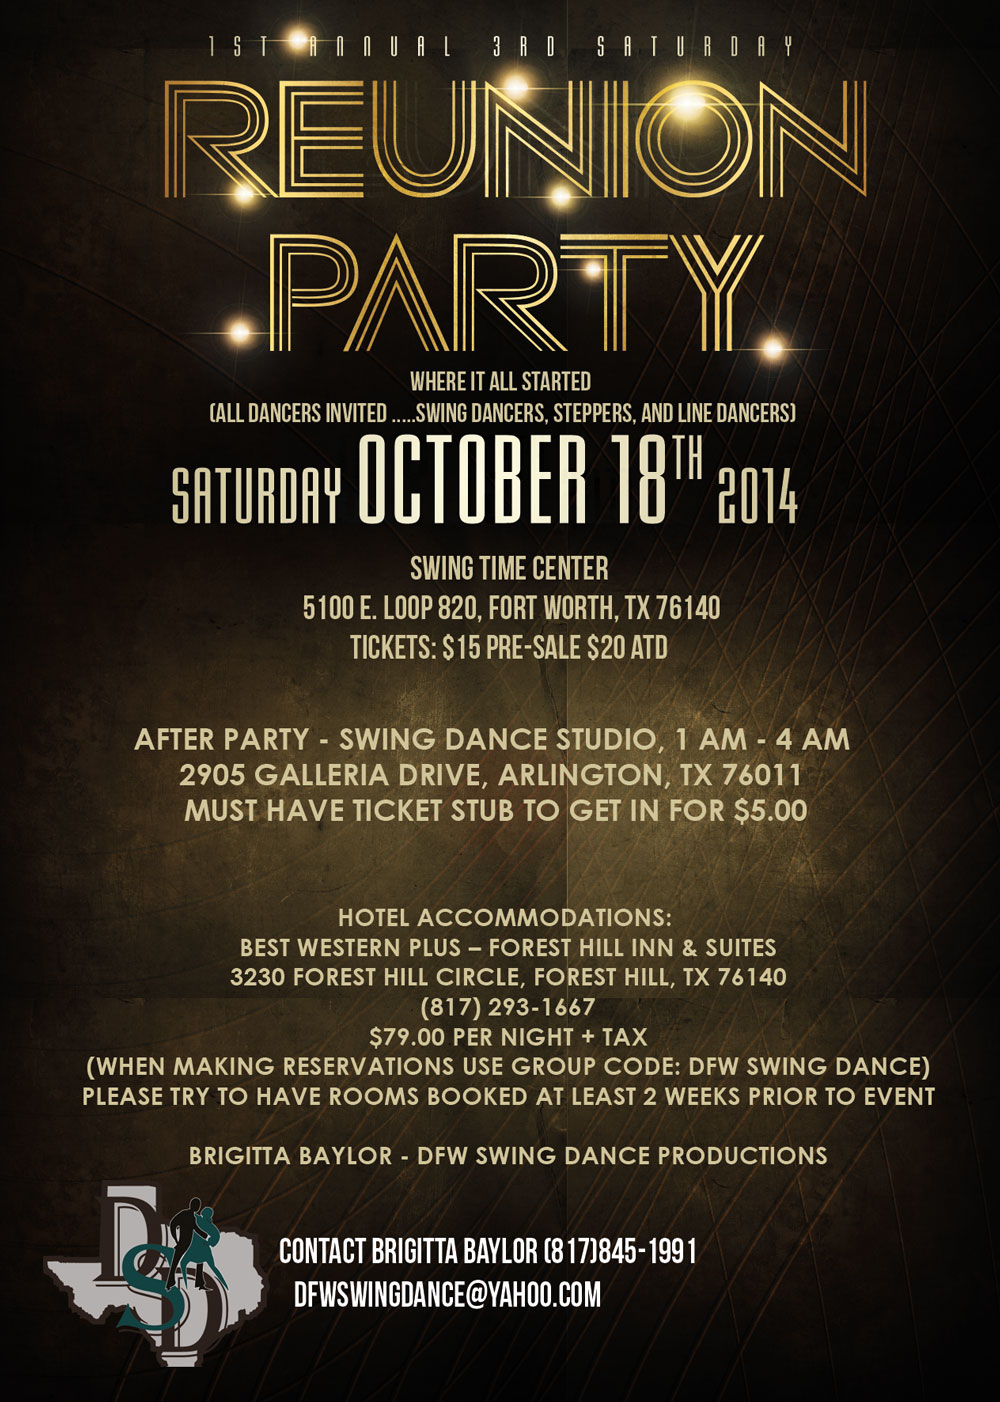 Dfw Swing 1st Annual 3rd Saturday Reunion Party Oct 18th